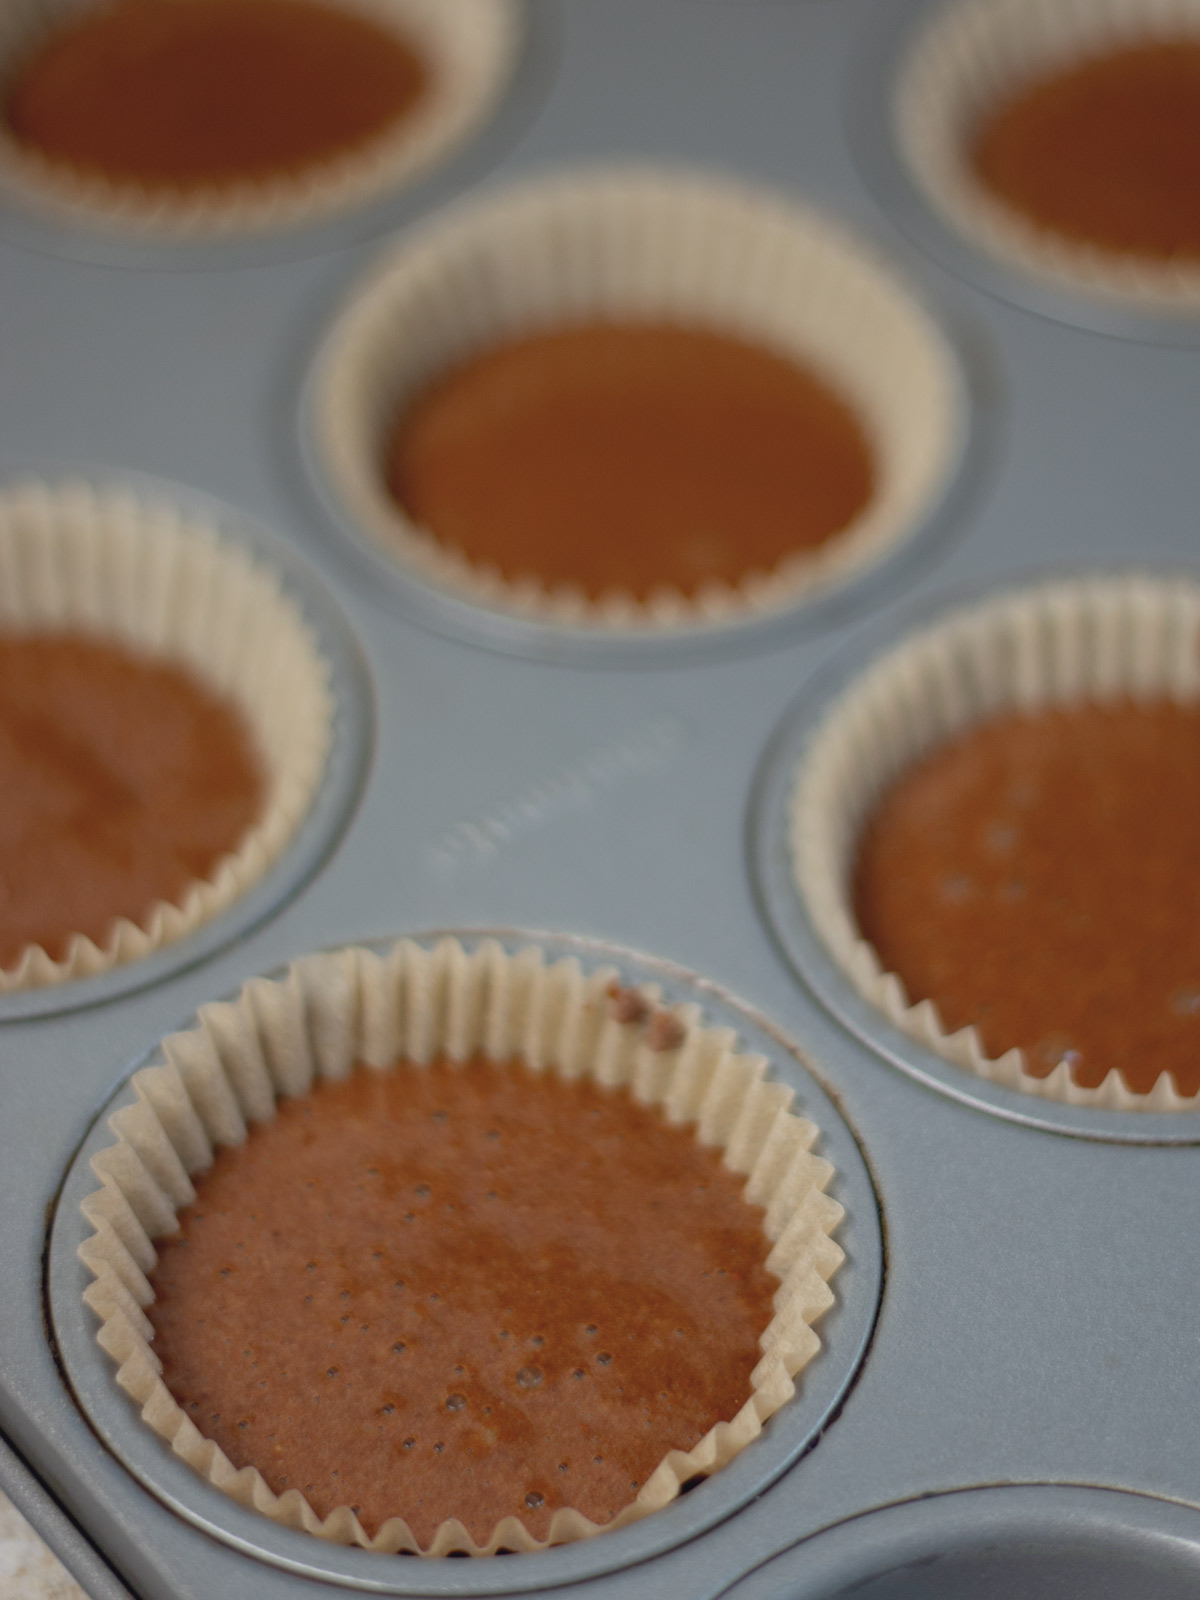 flourless chocolate muffins batter in the pan